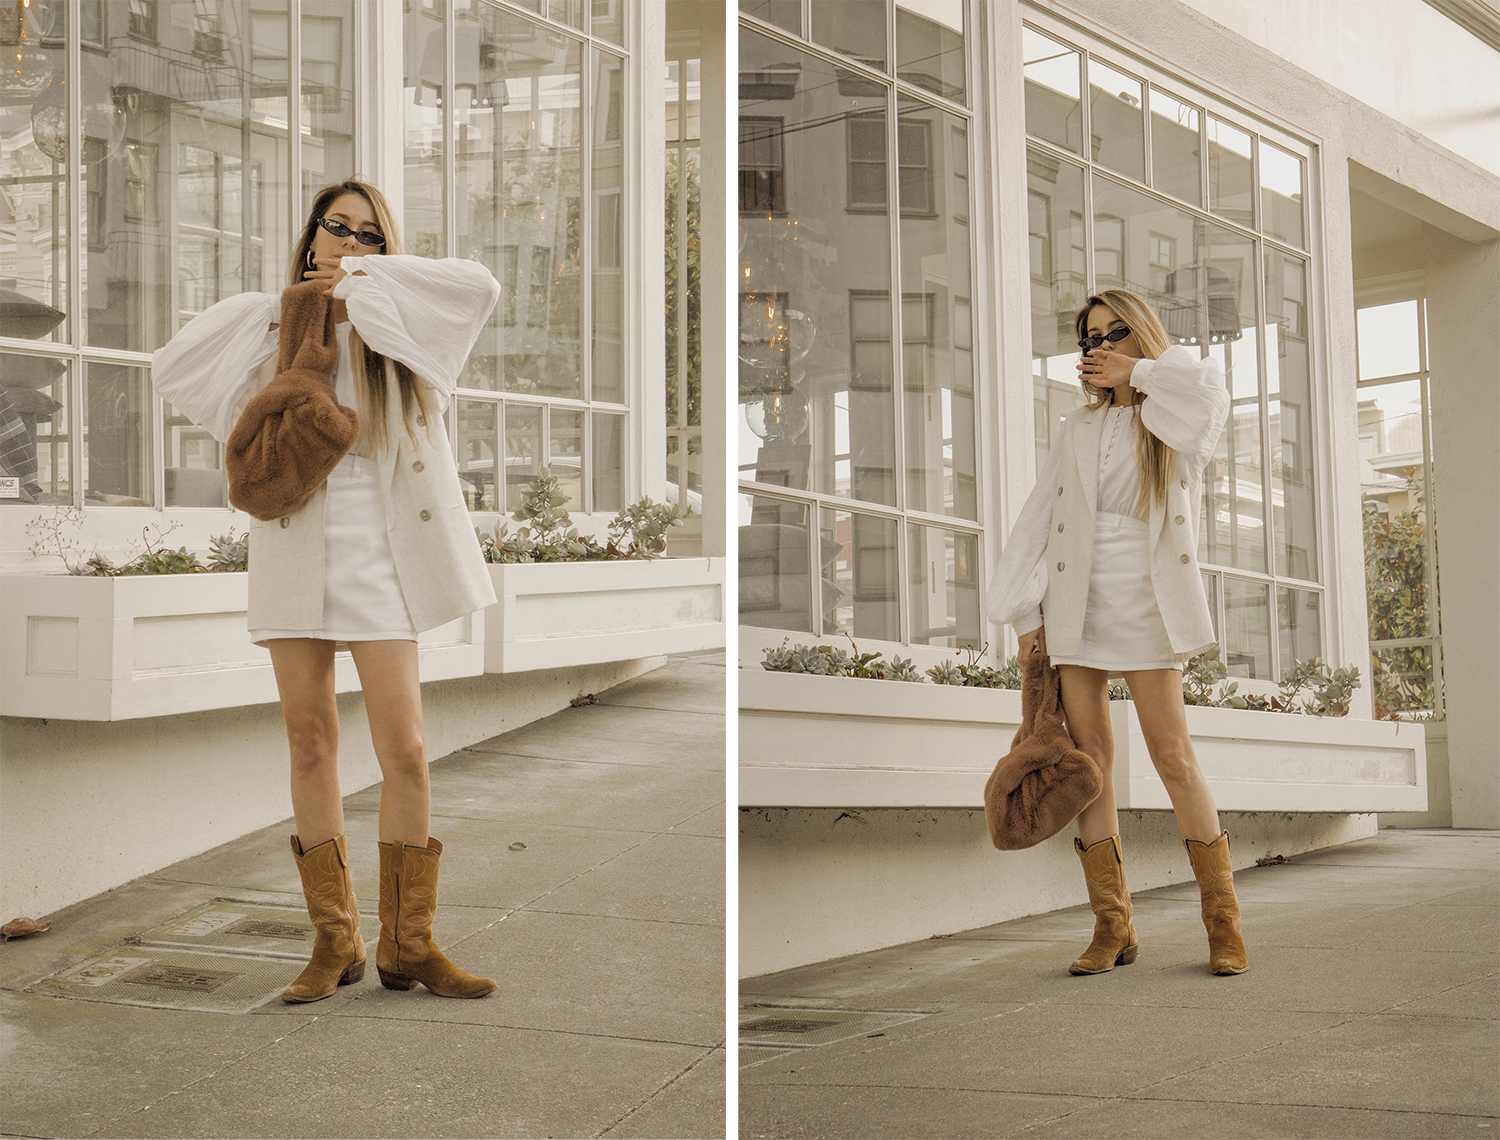 total_all_white_outfit_look_street_style_western_boots_isabel_marant_inspired_fur_bag_vest_denim_skirt_summer_2018_trend_lena_juice_the_white_ocean_06